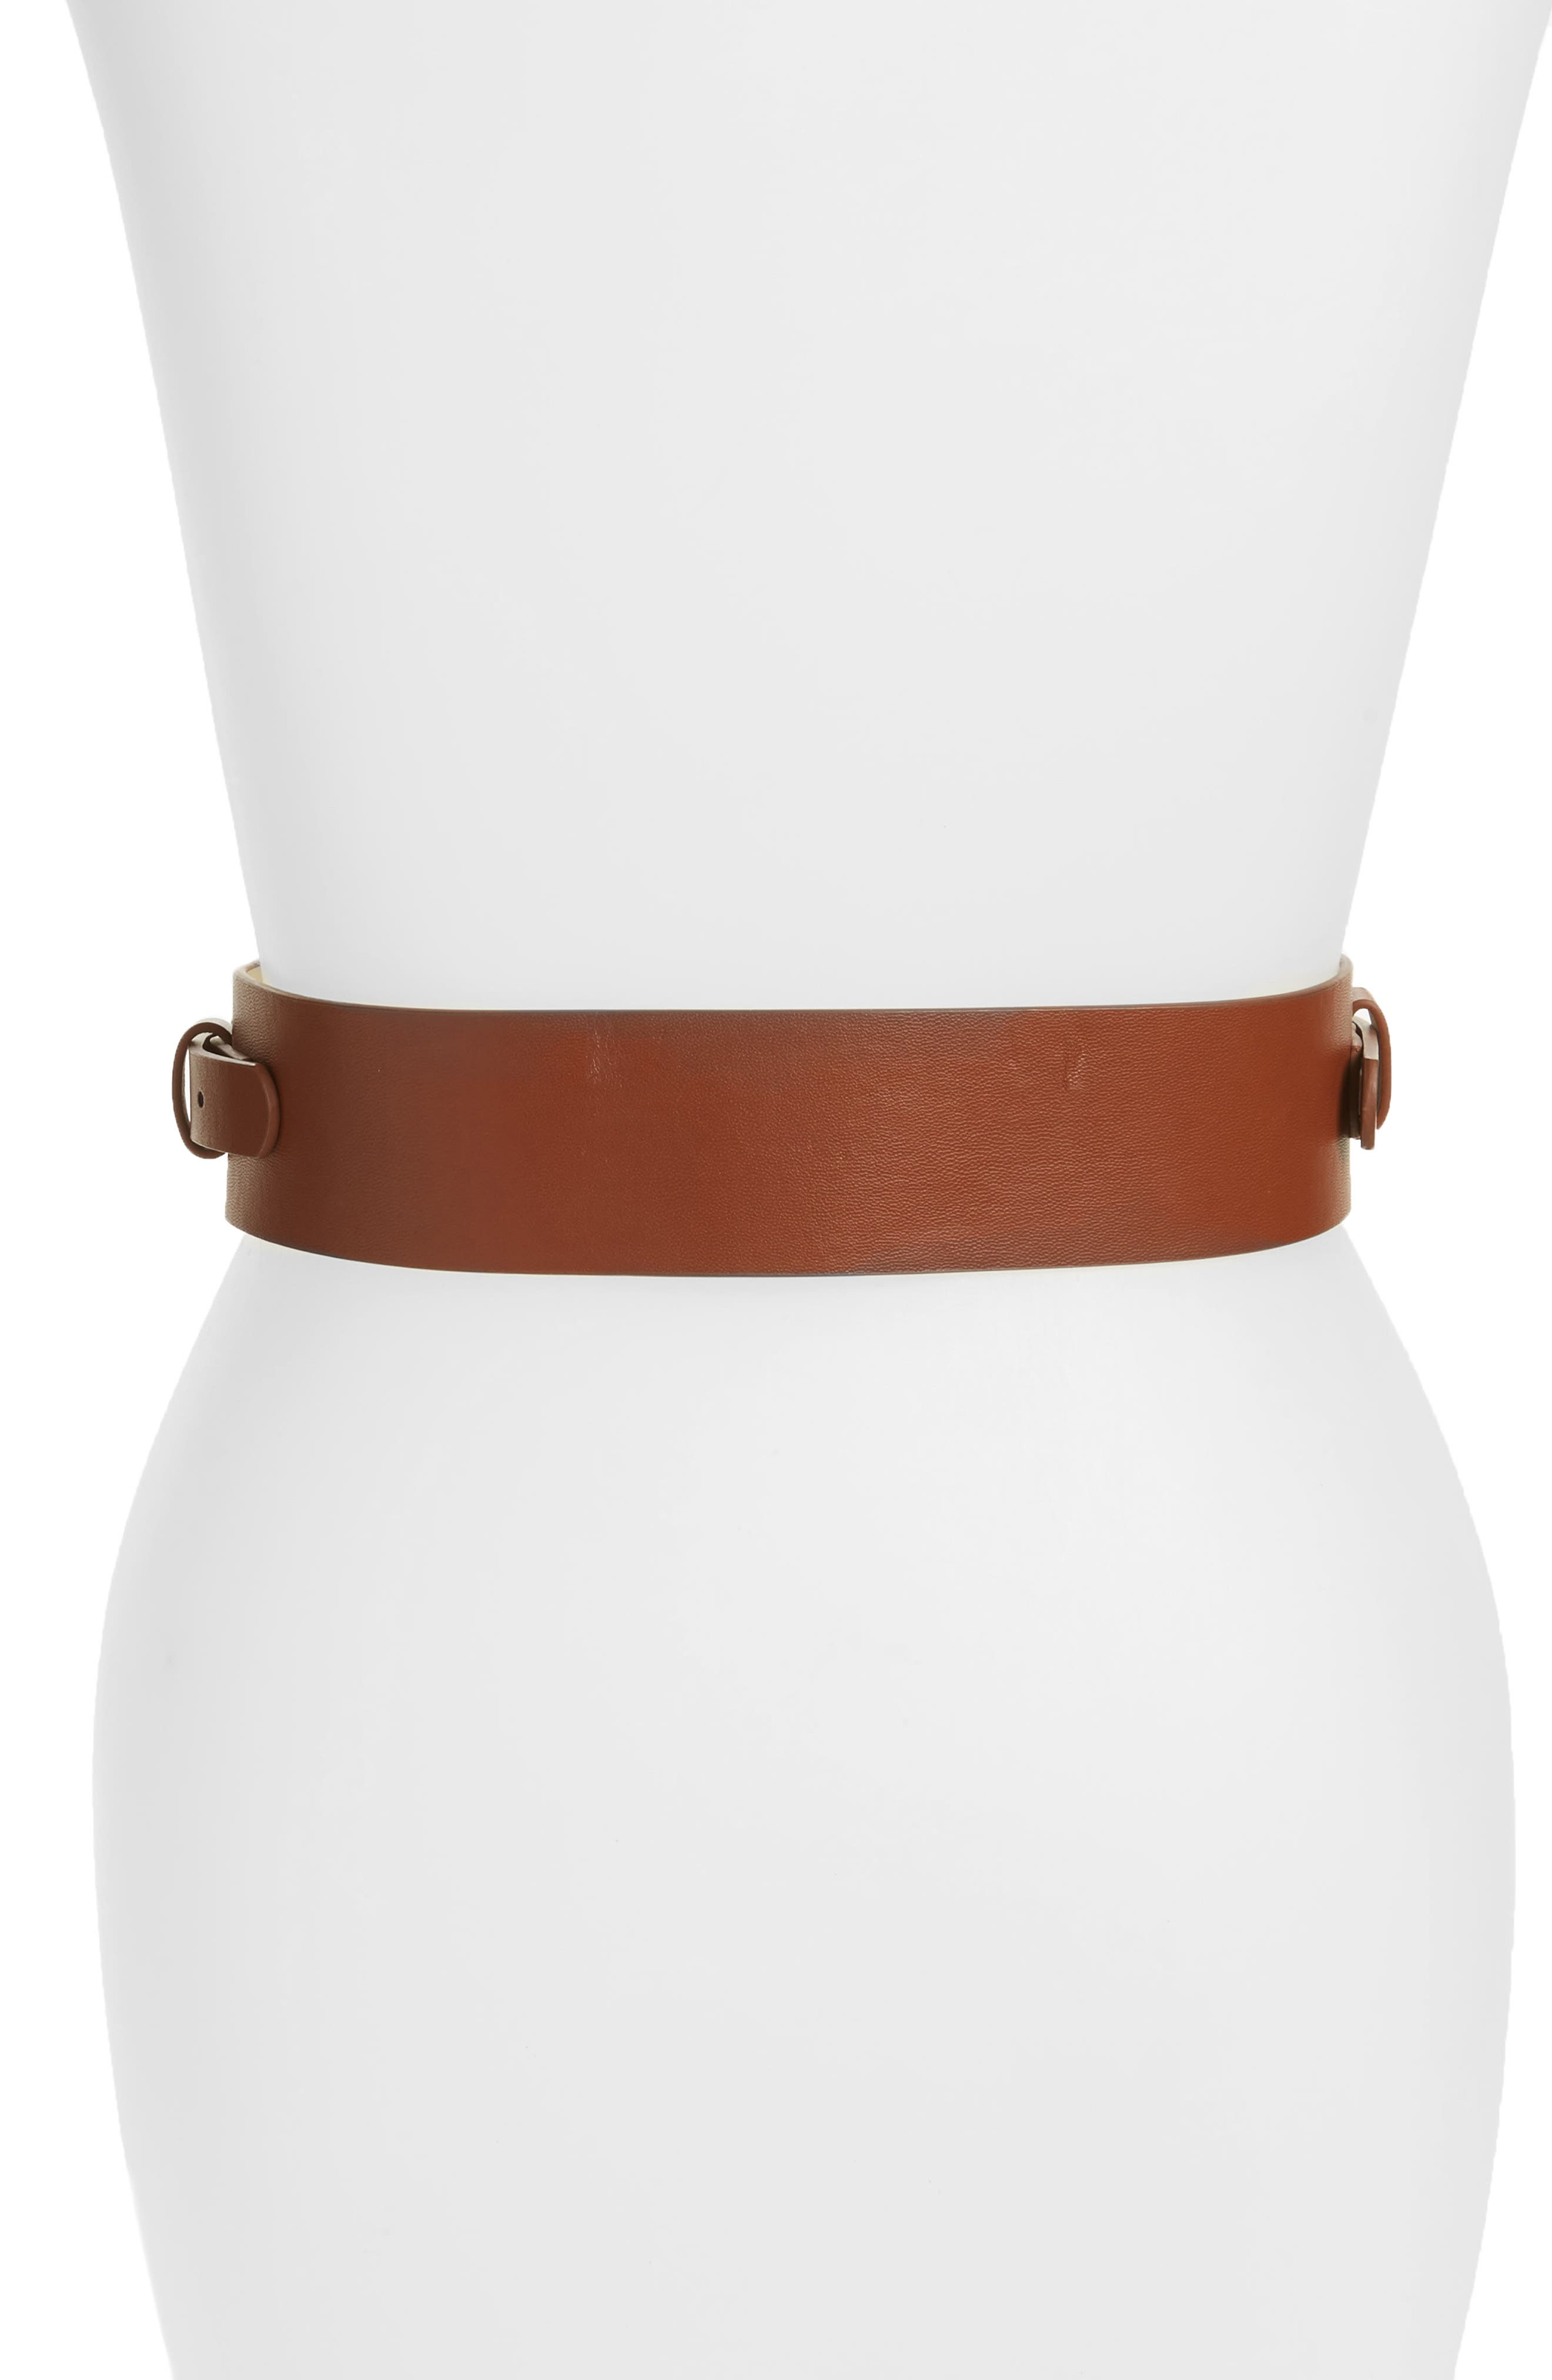 Accessory Collective Faux Leather Equestrian Belt,                             Alternate thumbnail 2, color,                             Cognac/ Gold